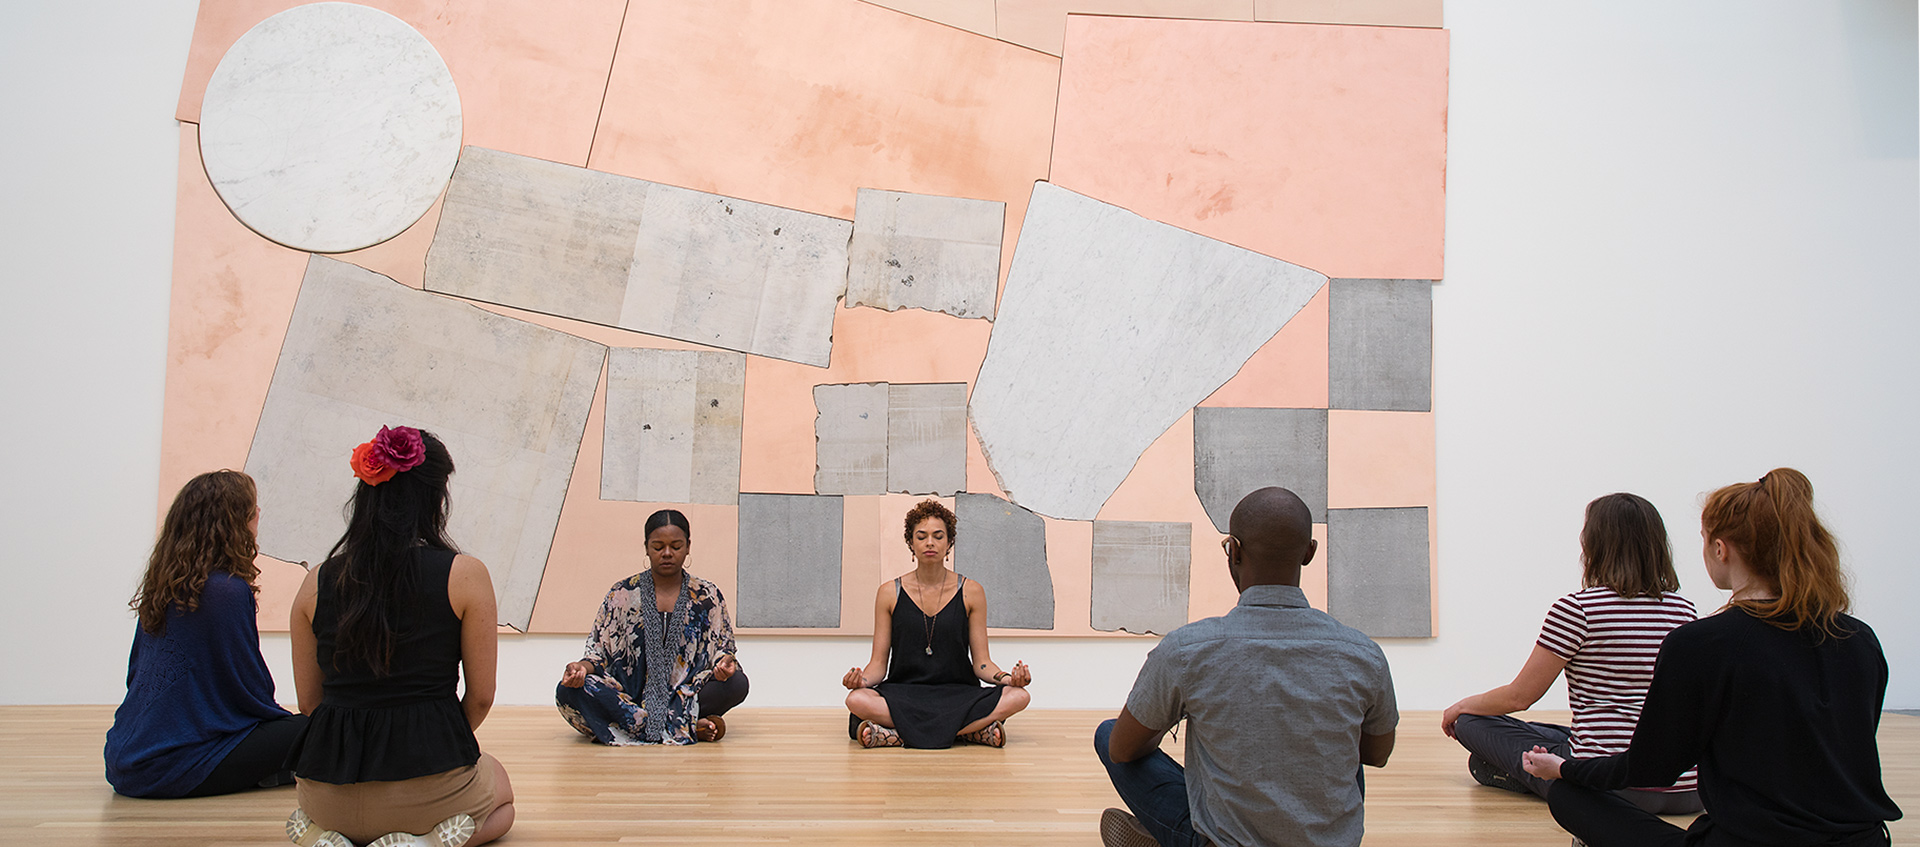 a group of people practicing yoga with an art work installation behind them